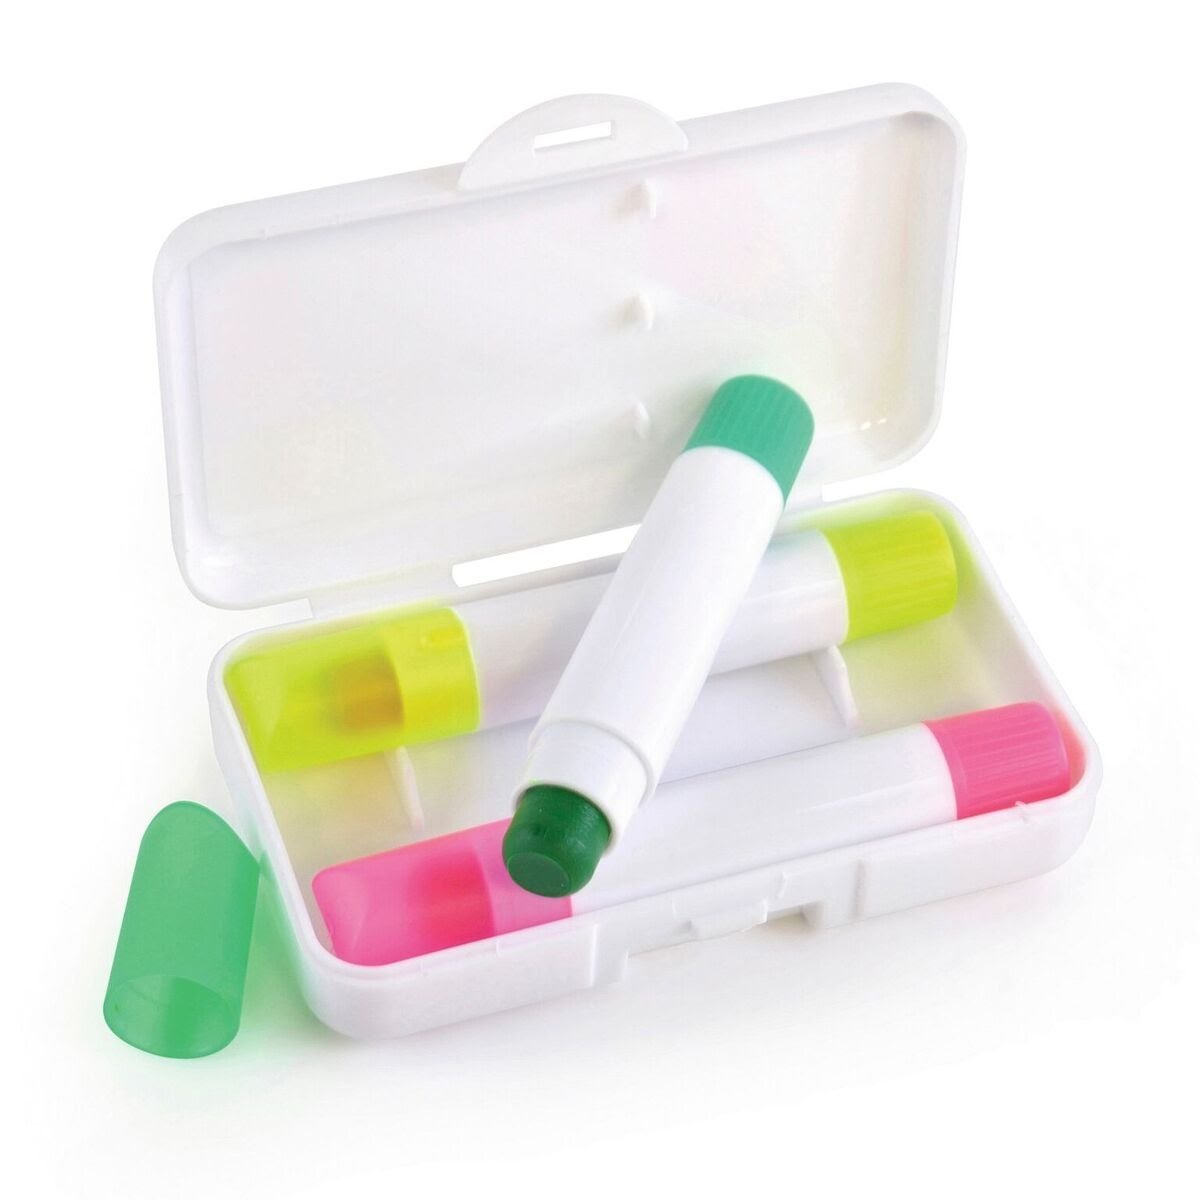 Wax Highlighter Crayon Set